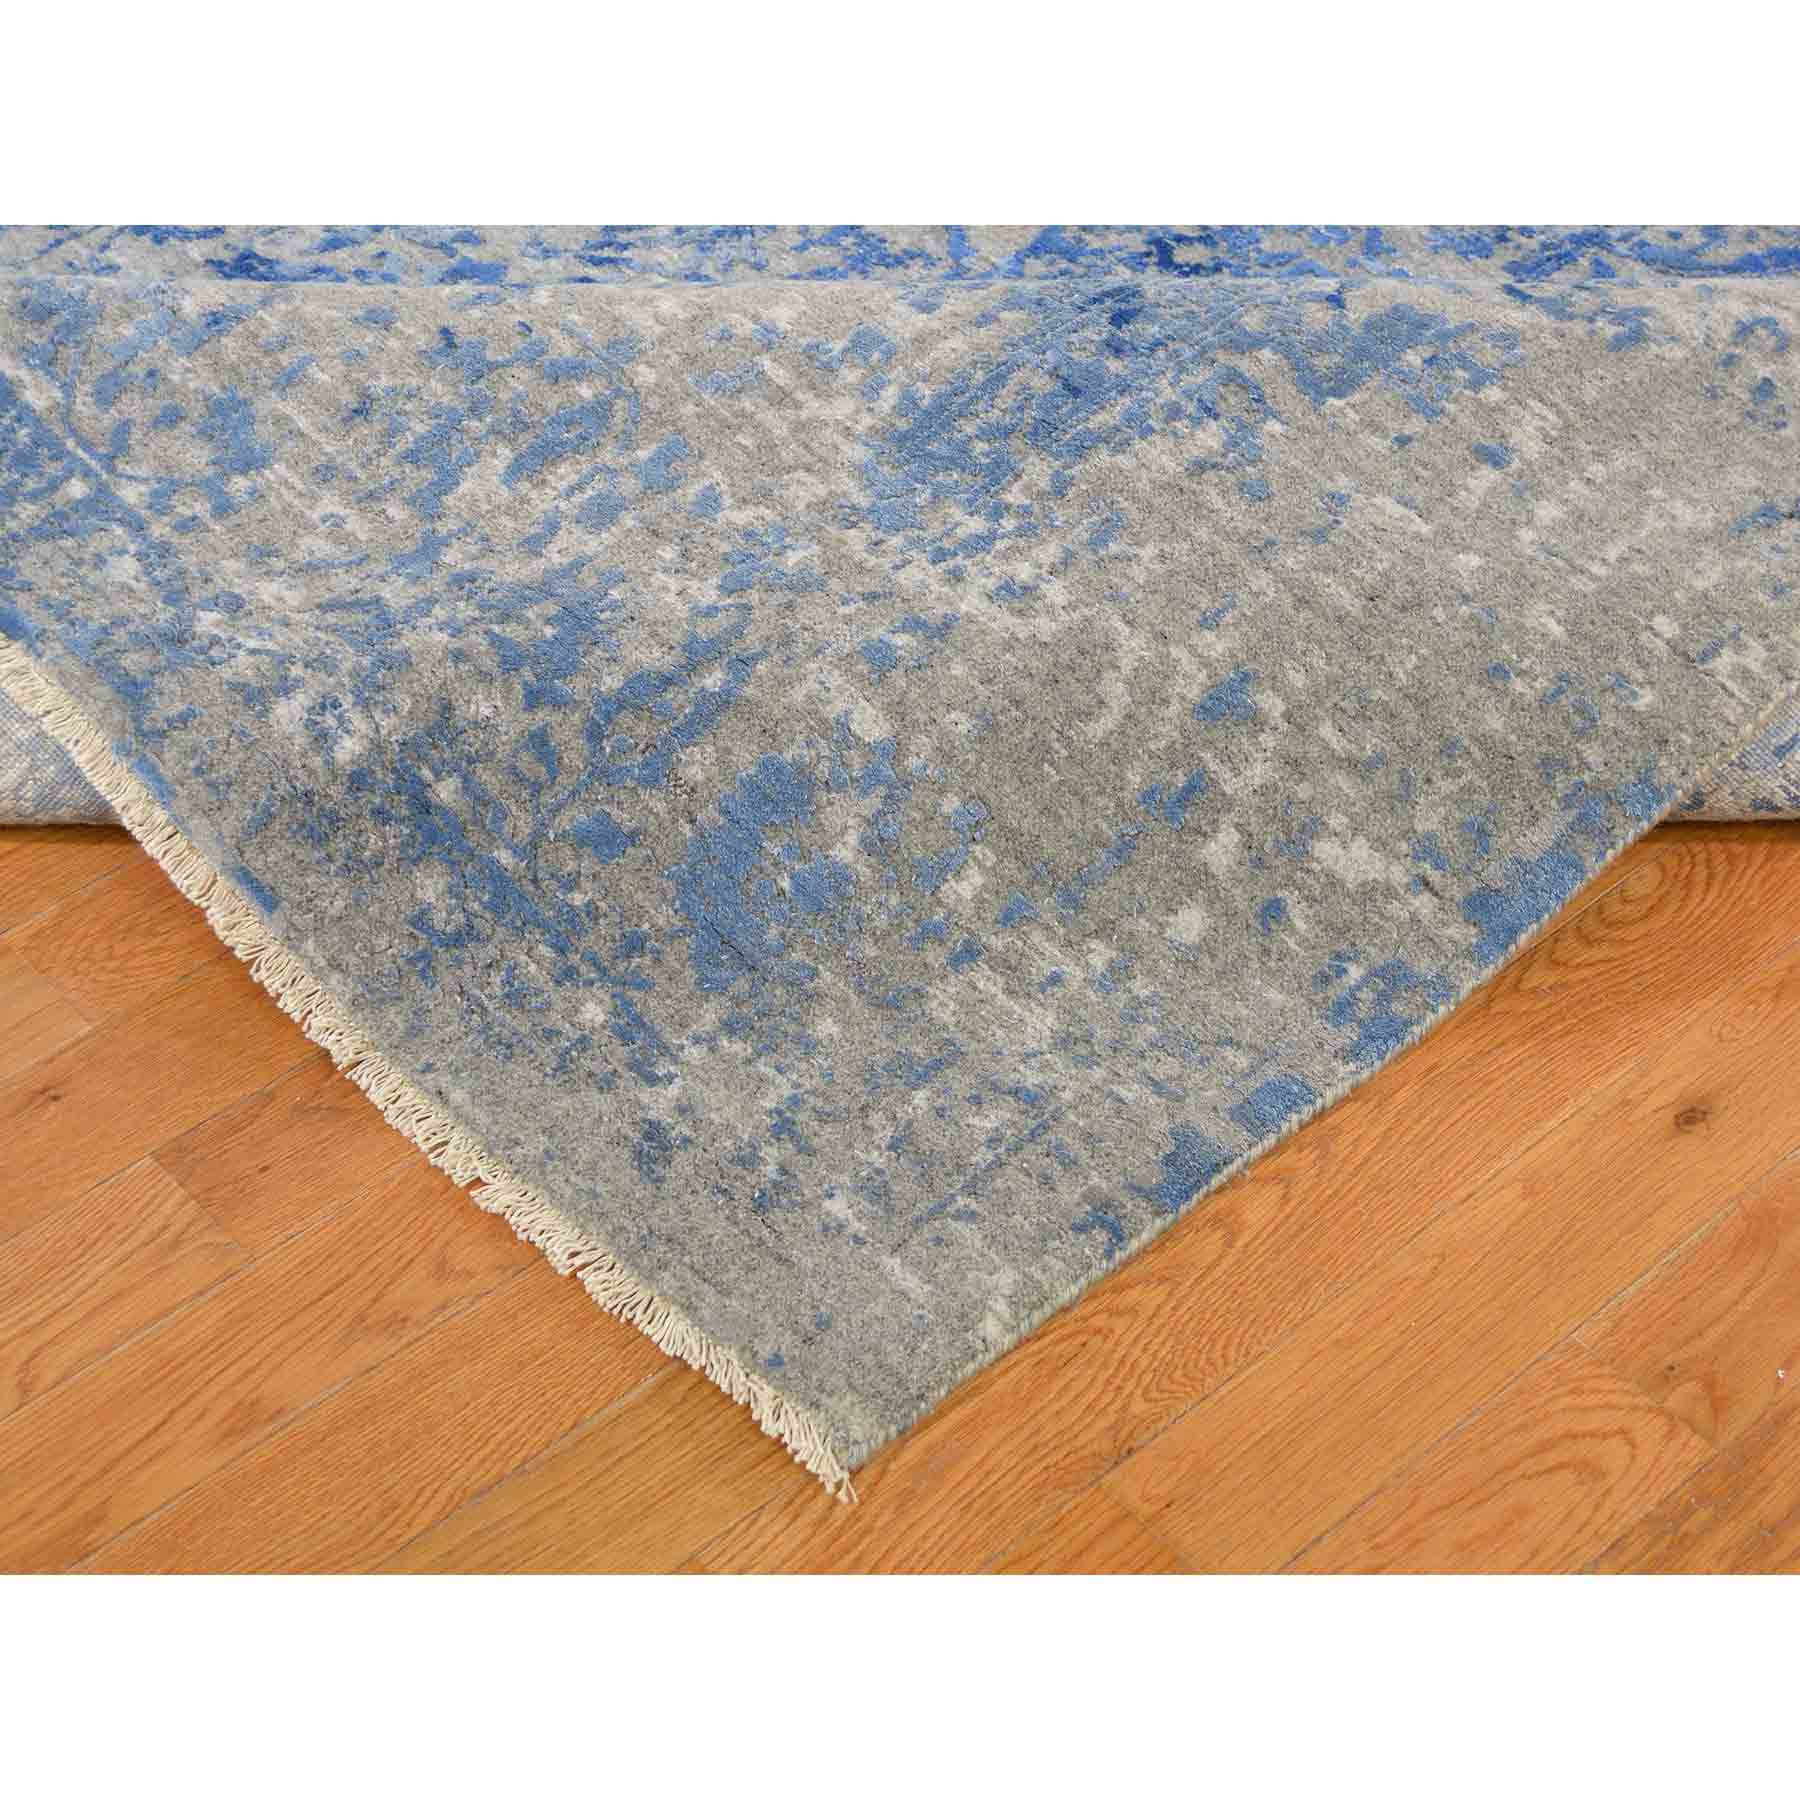 Transitional-Hand-Knotted-Rug-231215